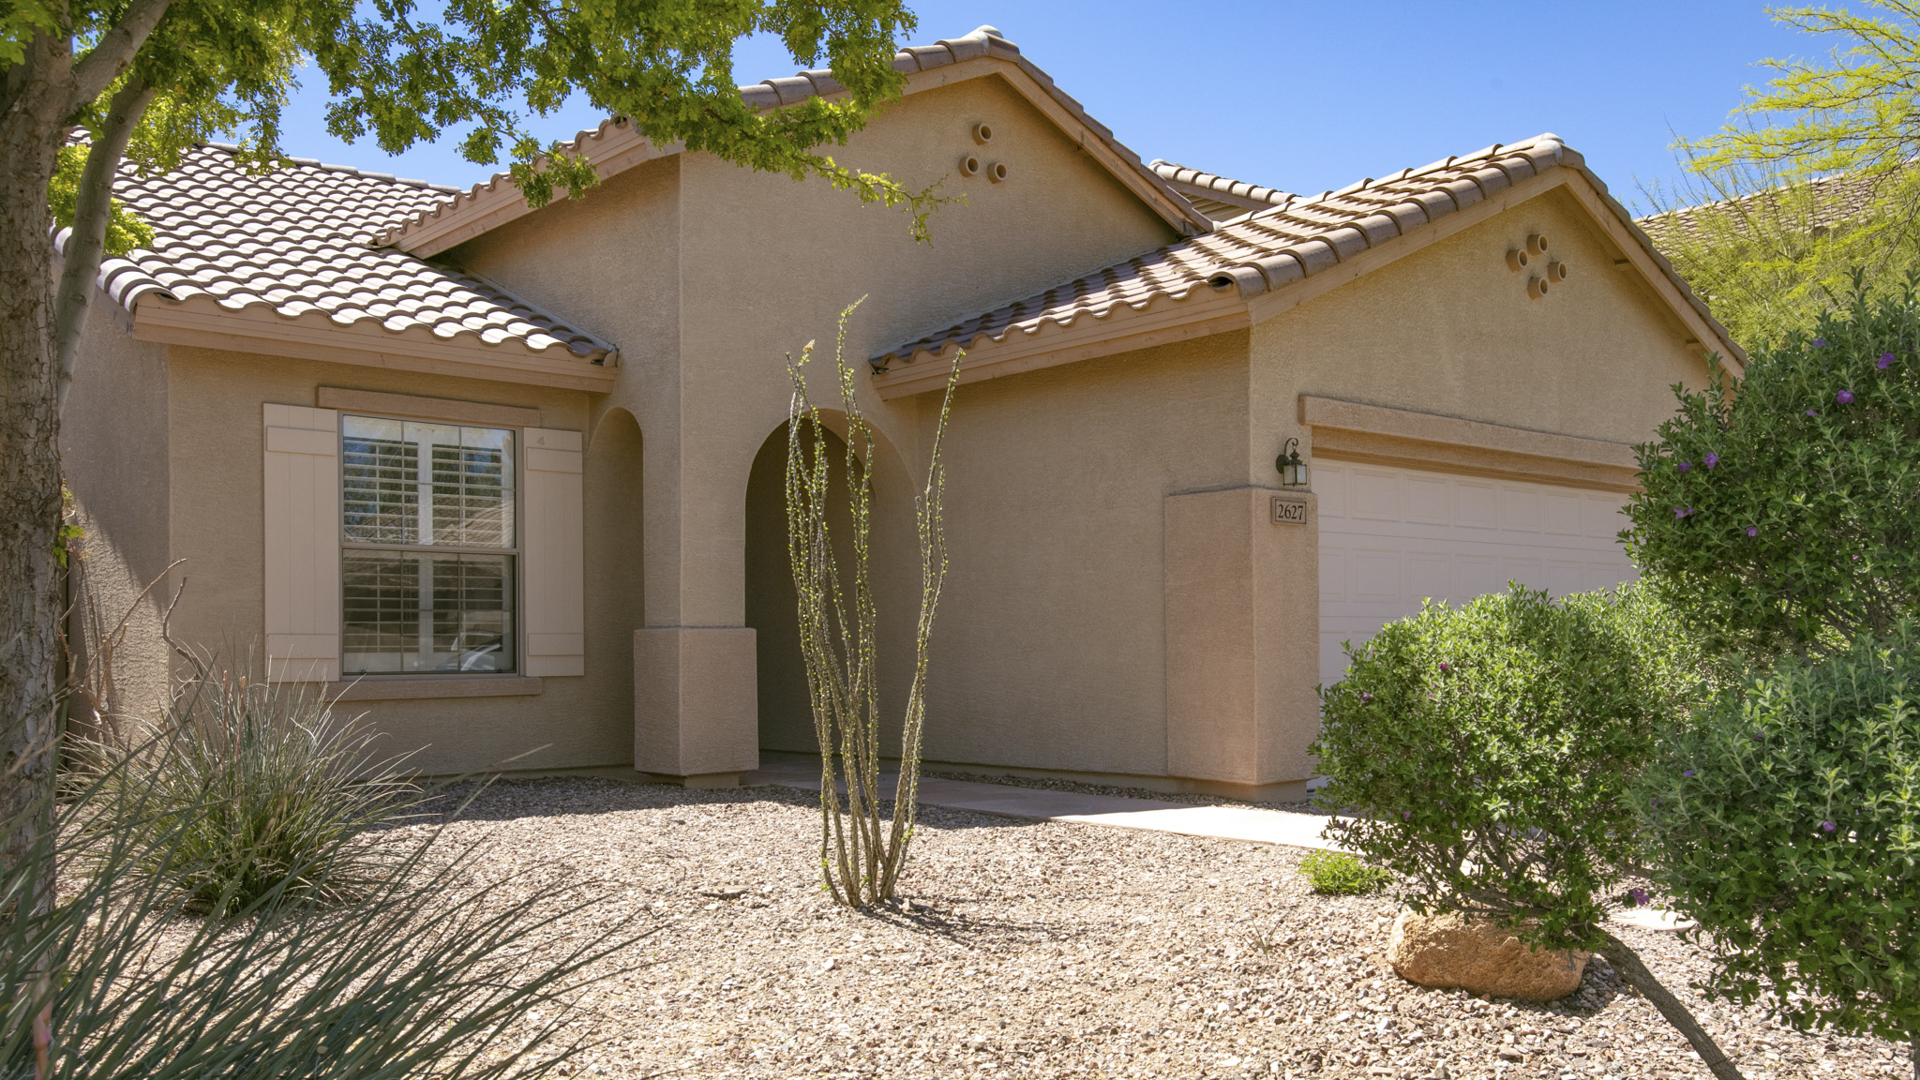 New Listing! 2627 W Bisbee Way, Anthem, AZ 85086 - Anthem | Amy Jones Group